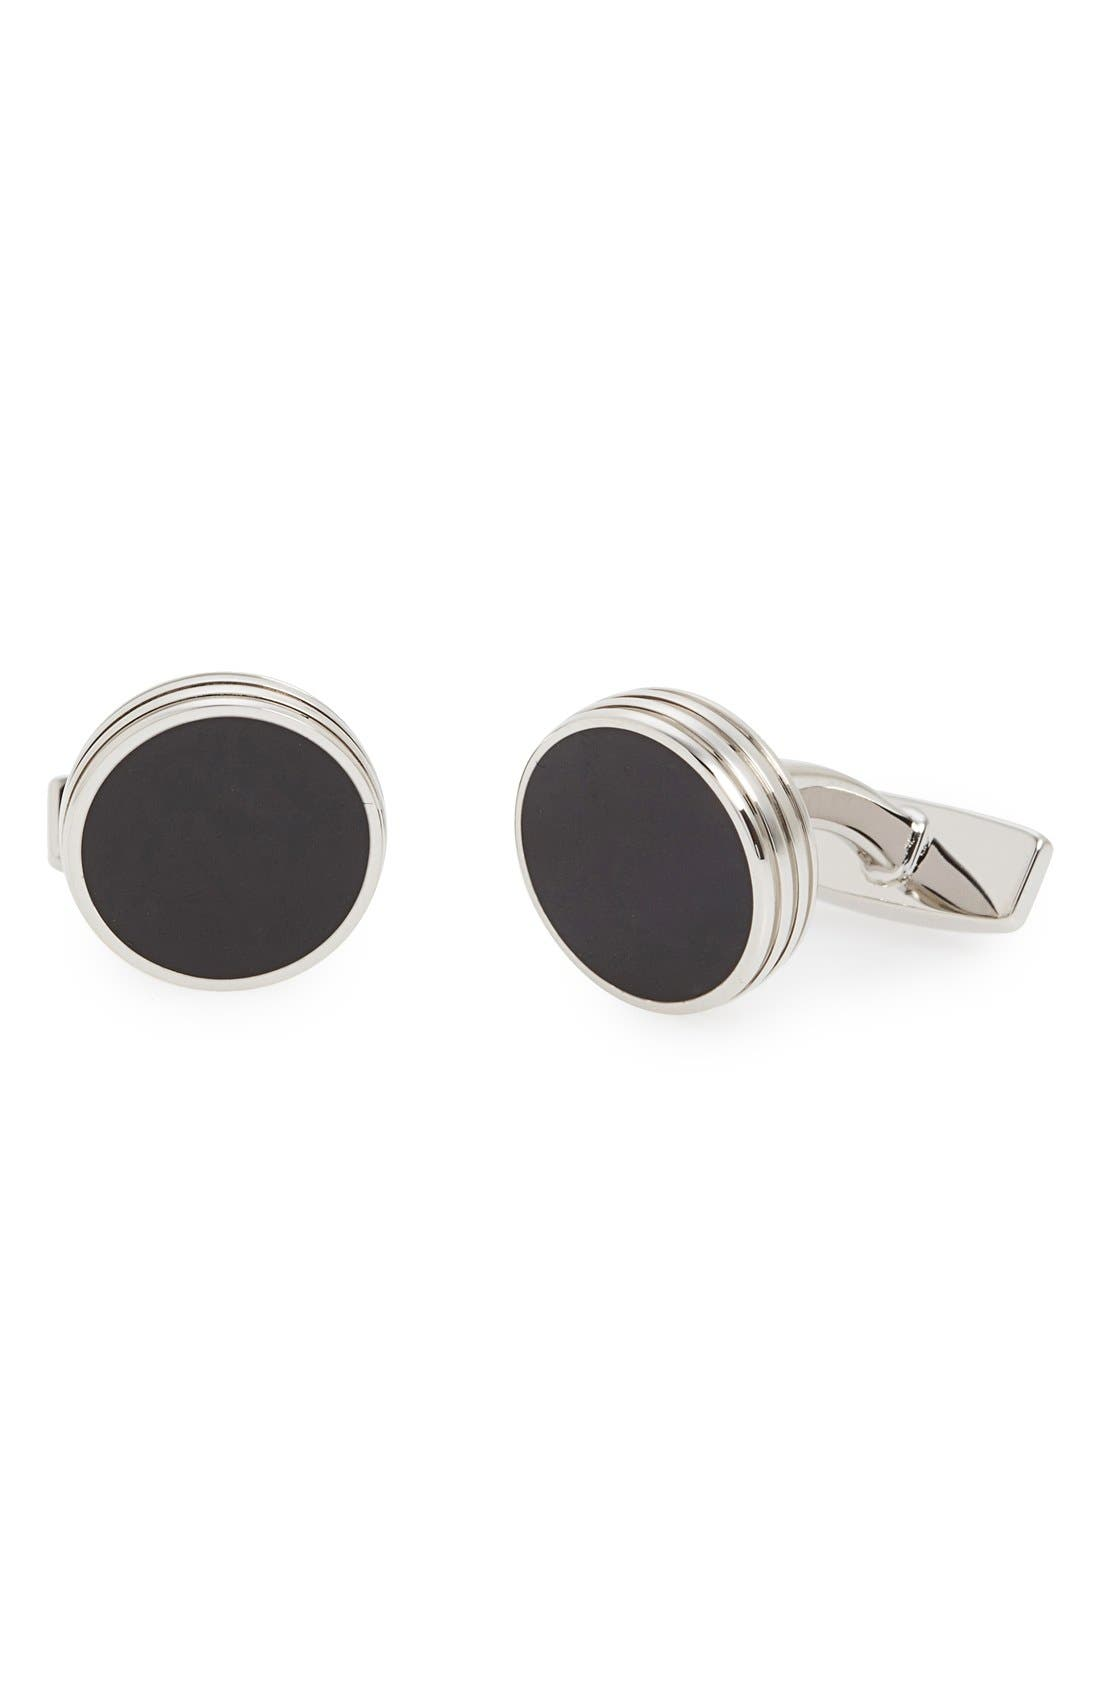 BOSS Roy Cuff Links